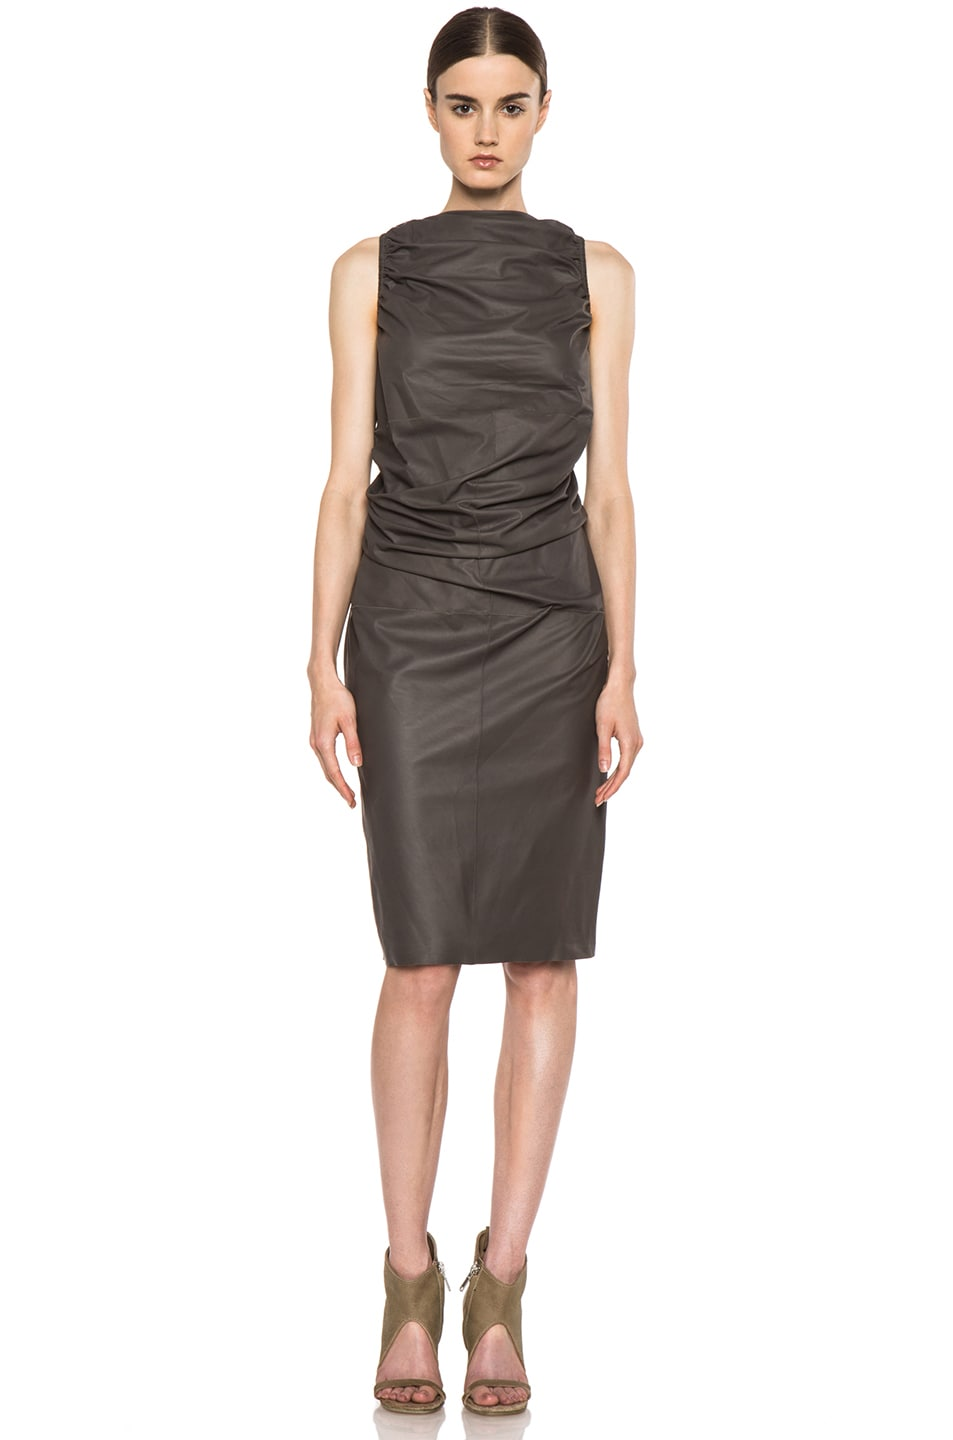 Image 1 of Rick Owens RUNWAY Leather Tube Tunic in Dark Dust